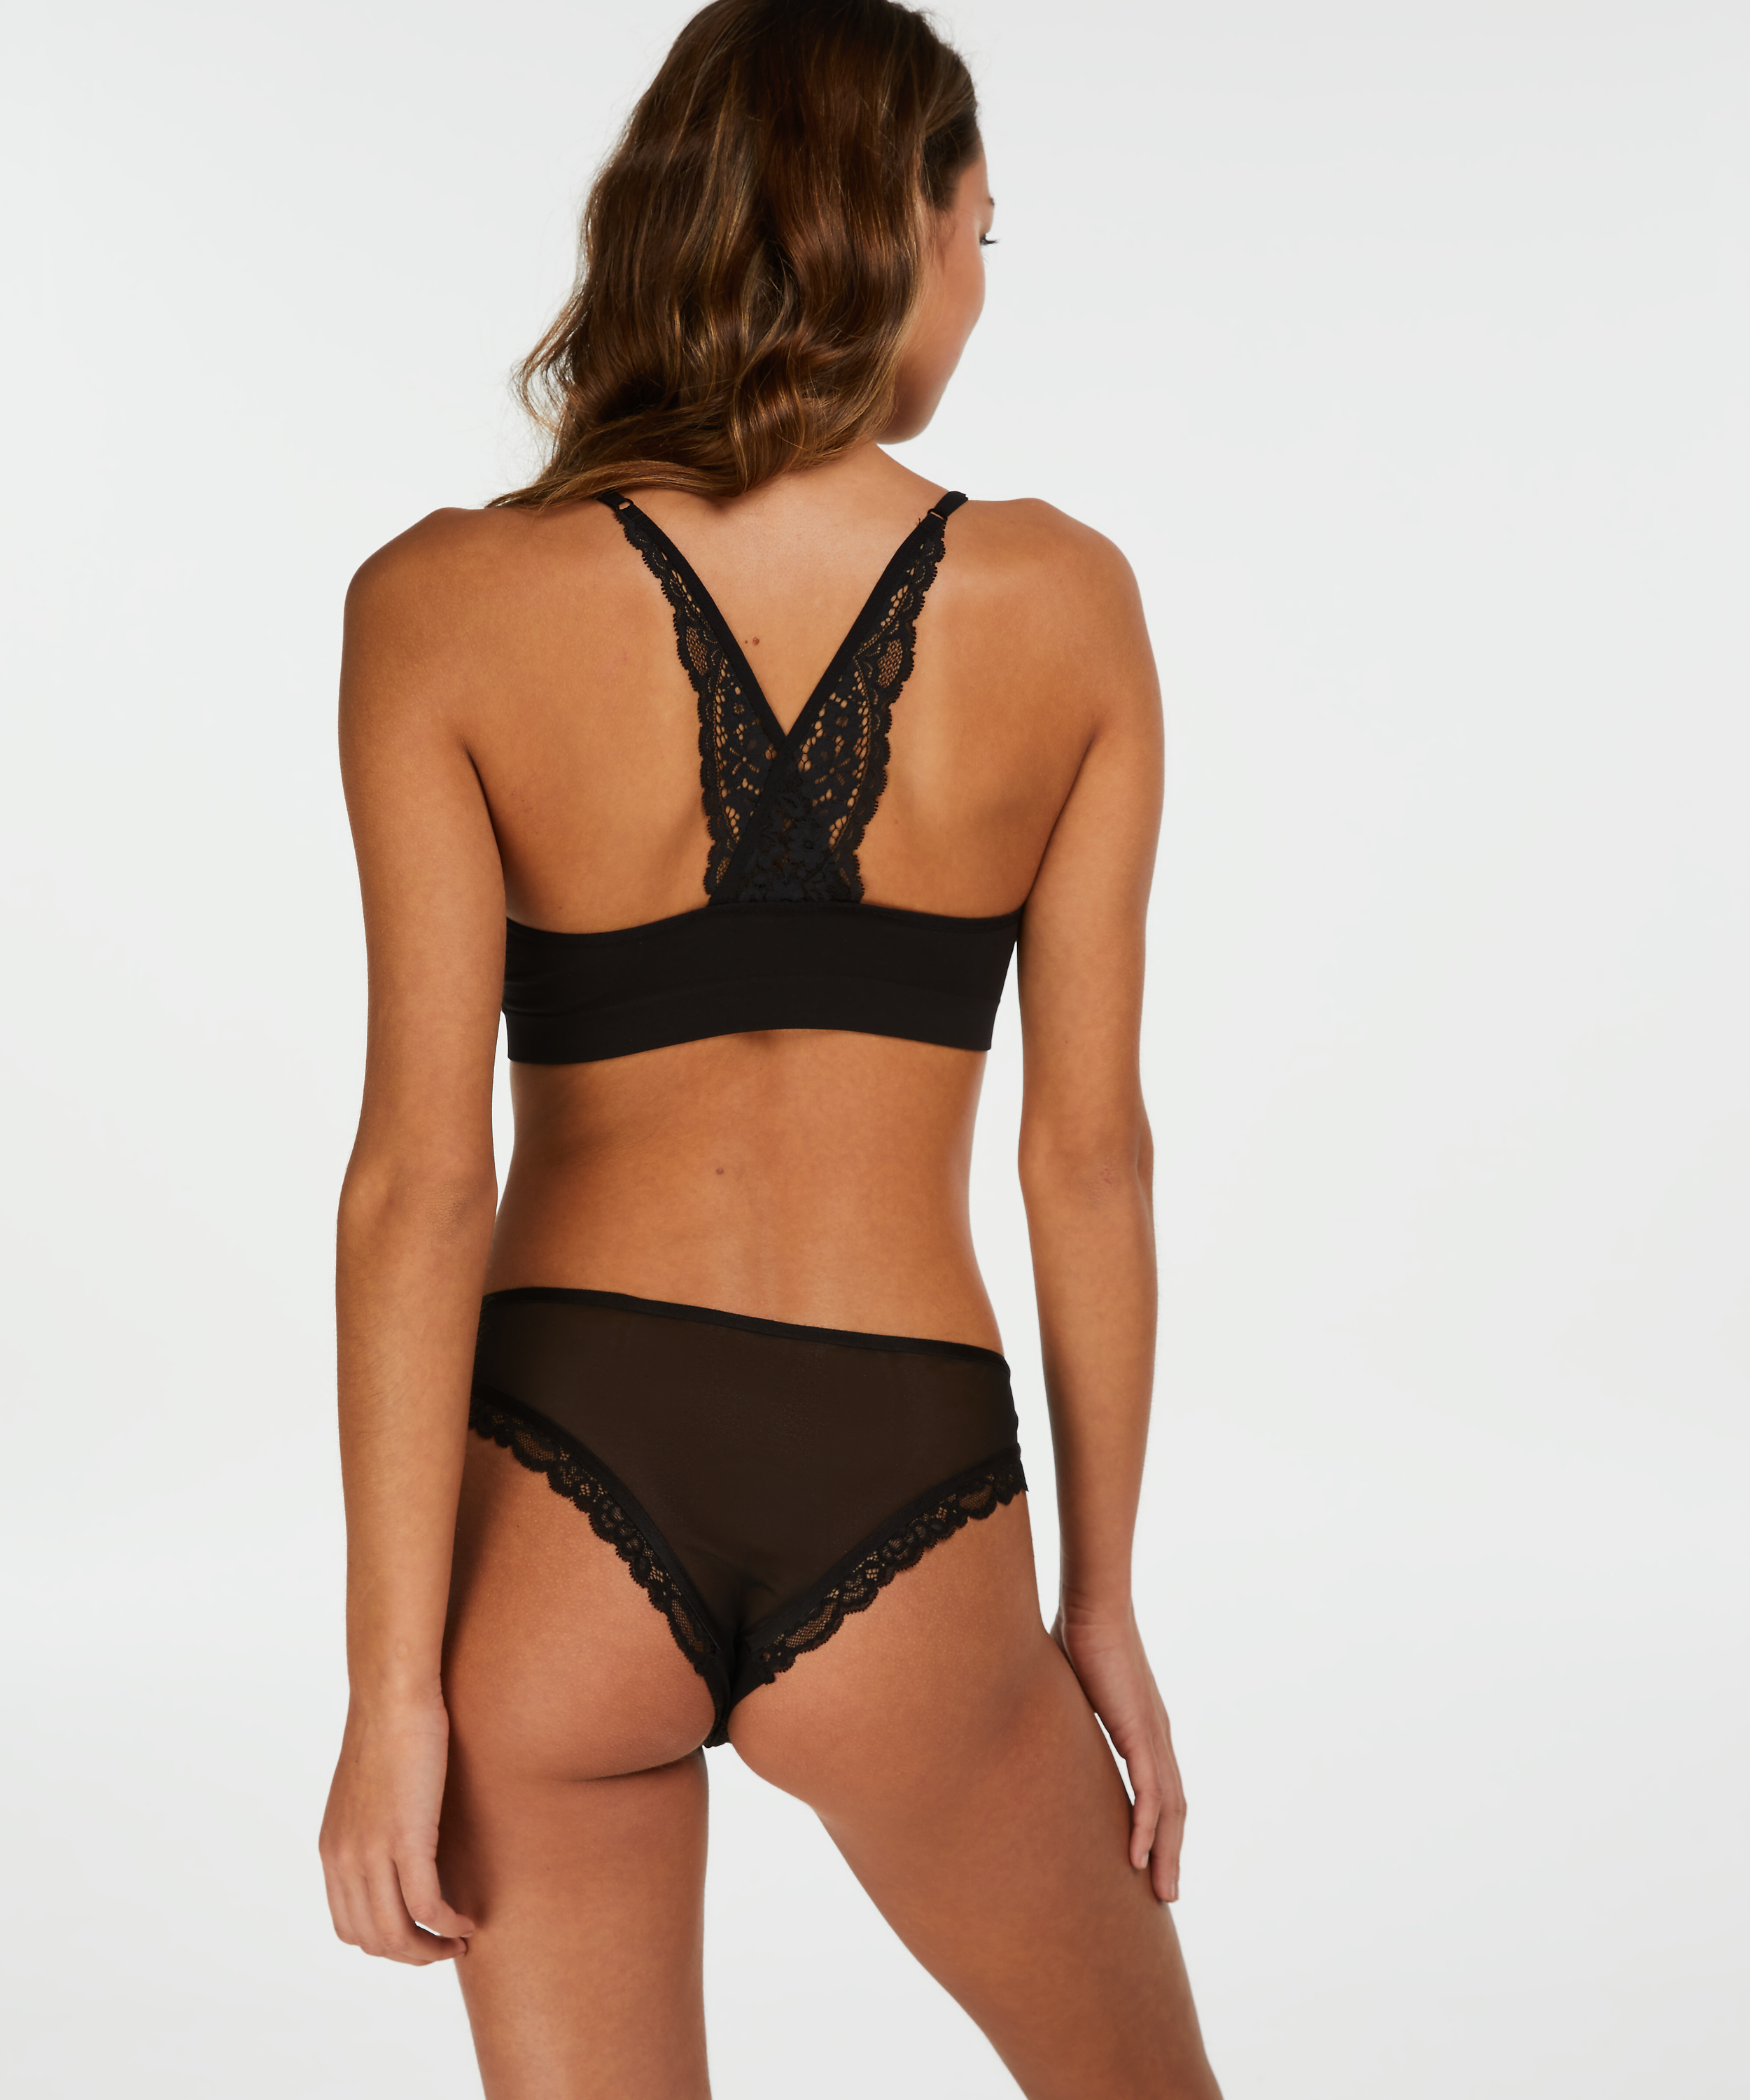 Marina Seamless Lace Back, sort, main